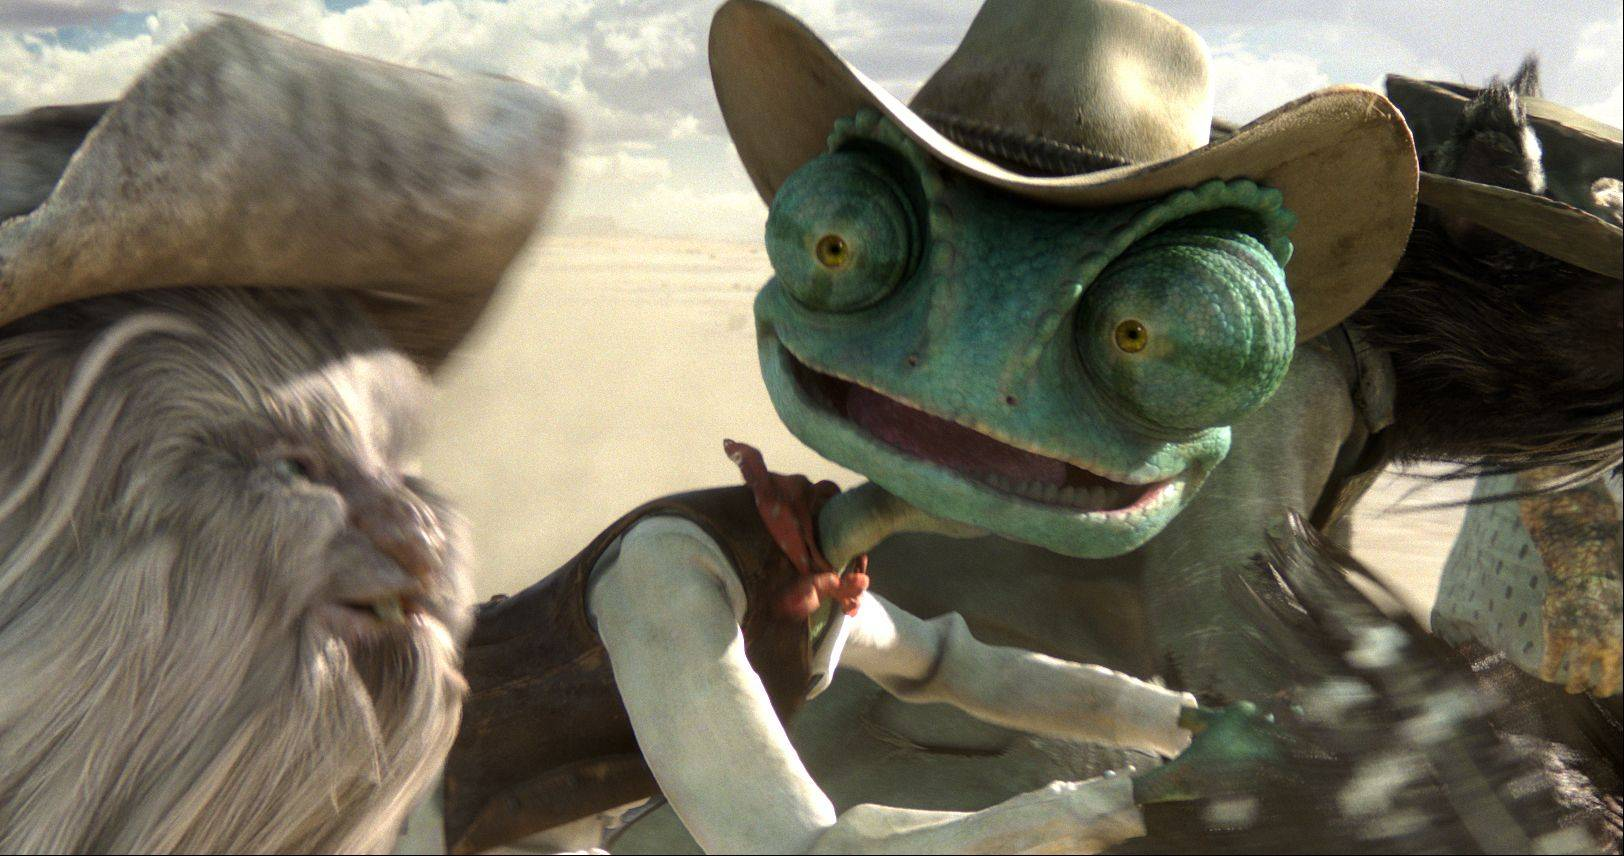 Paramount�s first fully owned animated movie, �Rango,� has grossed more than $240 million worldwide since its release in March.